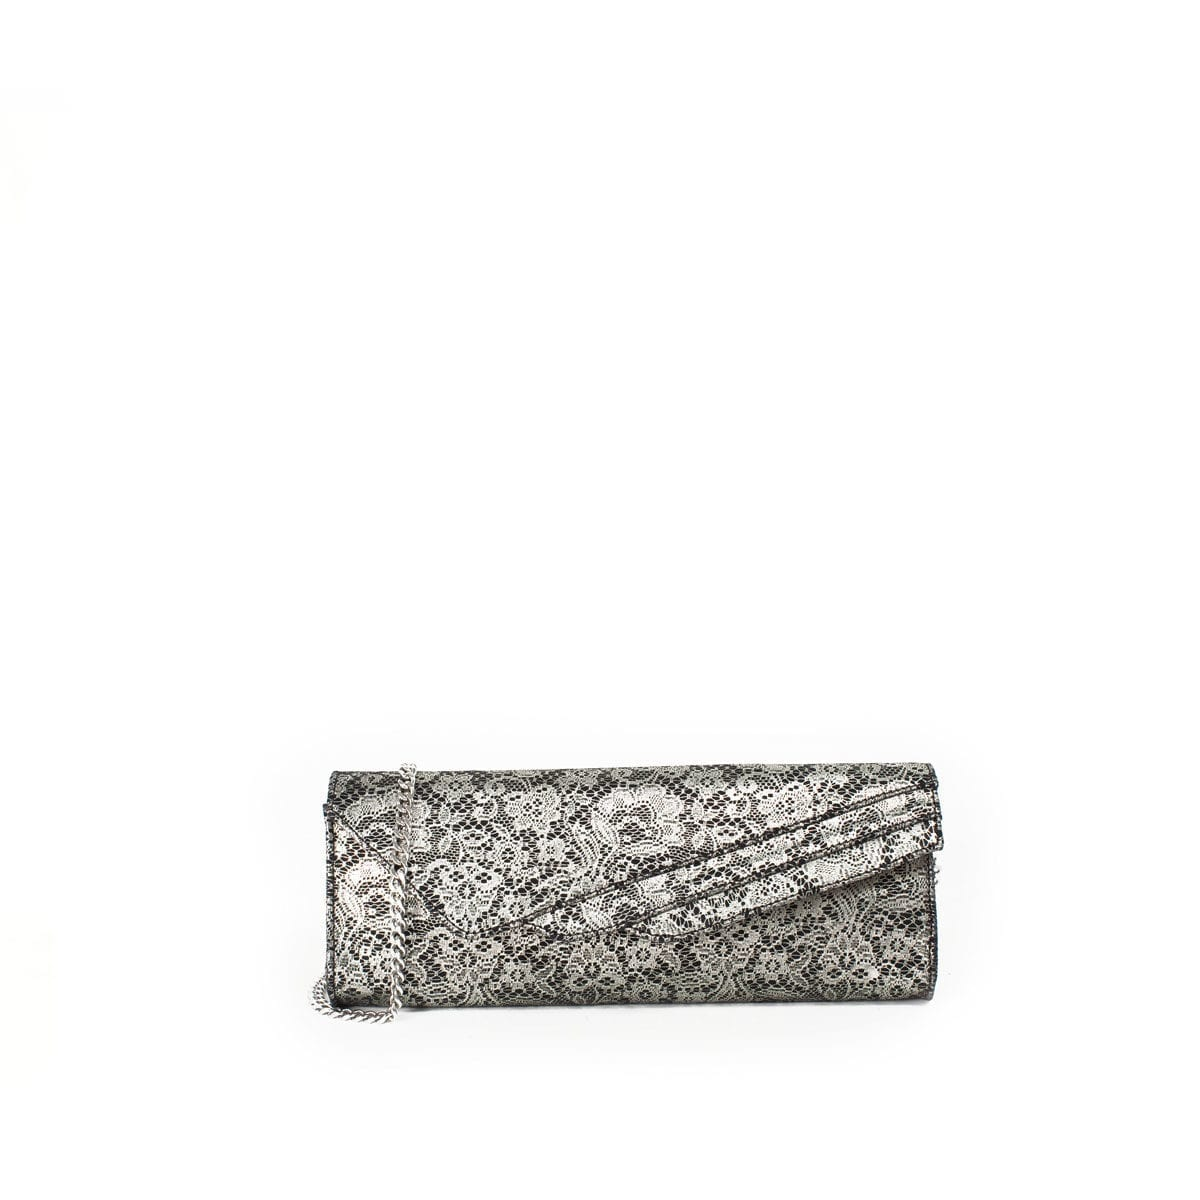 LUMI Hannele Clutch, in lace black.